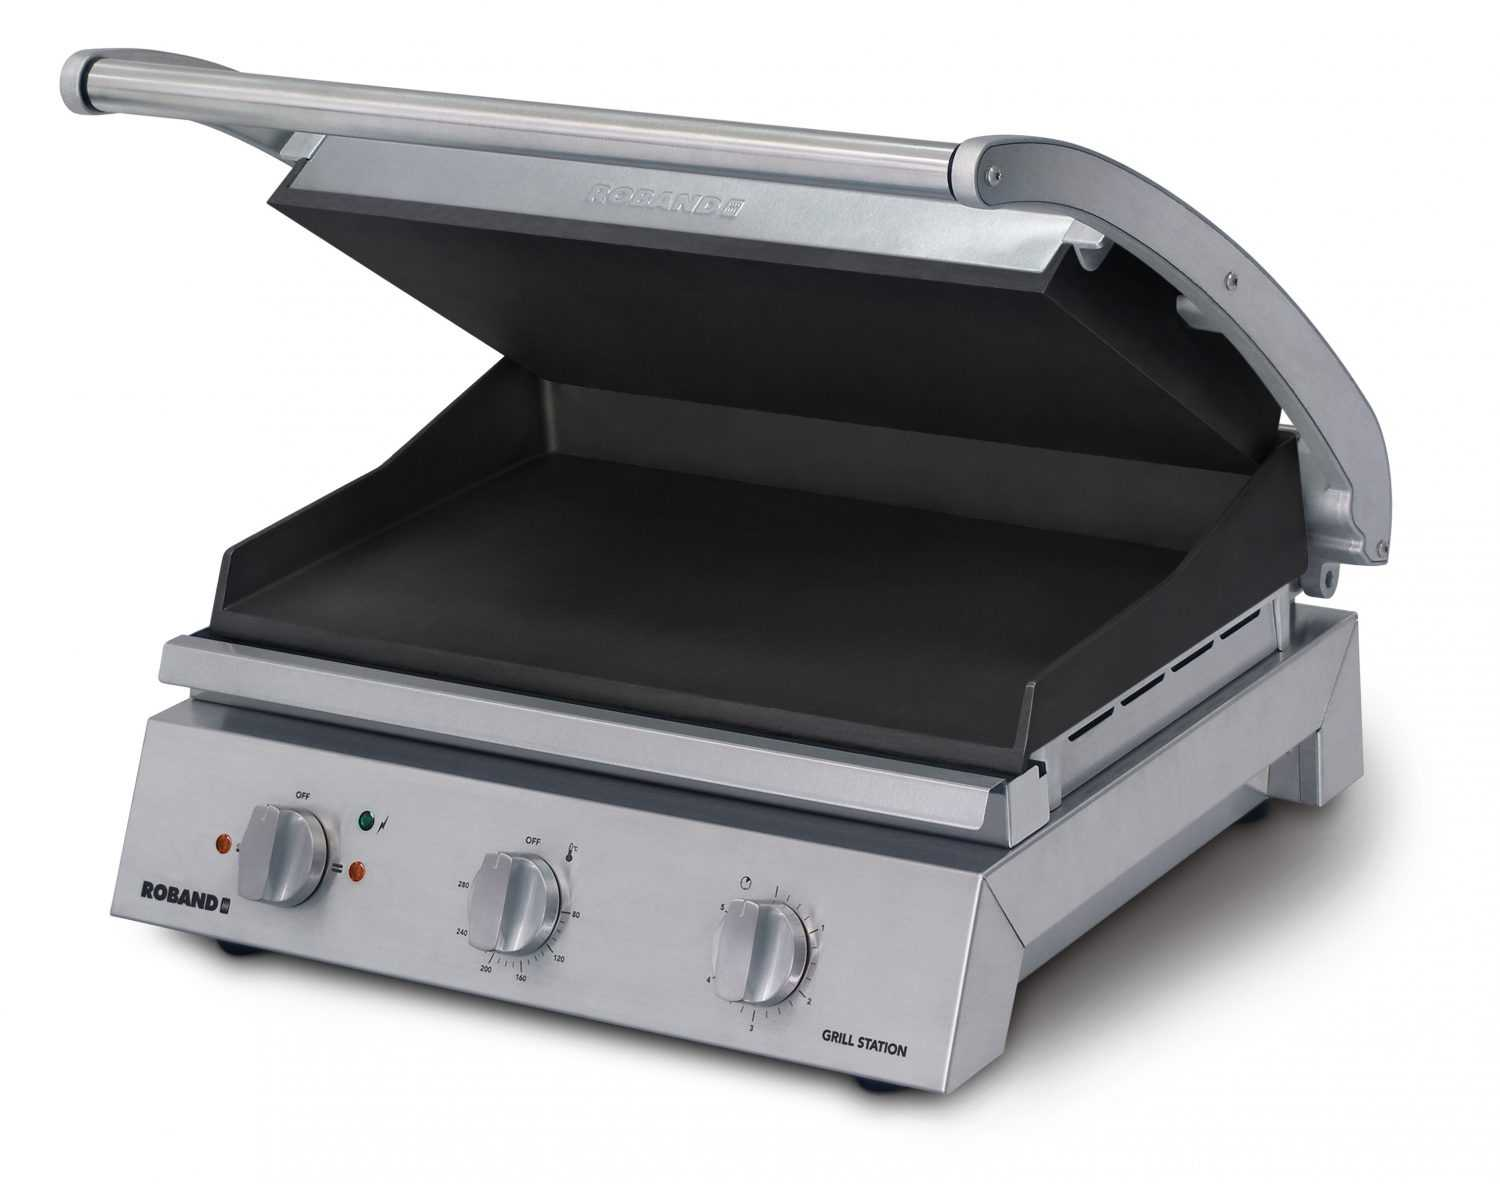 Roband GSA815ST Grill Station 8 slice